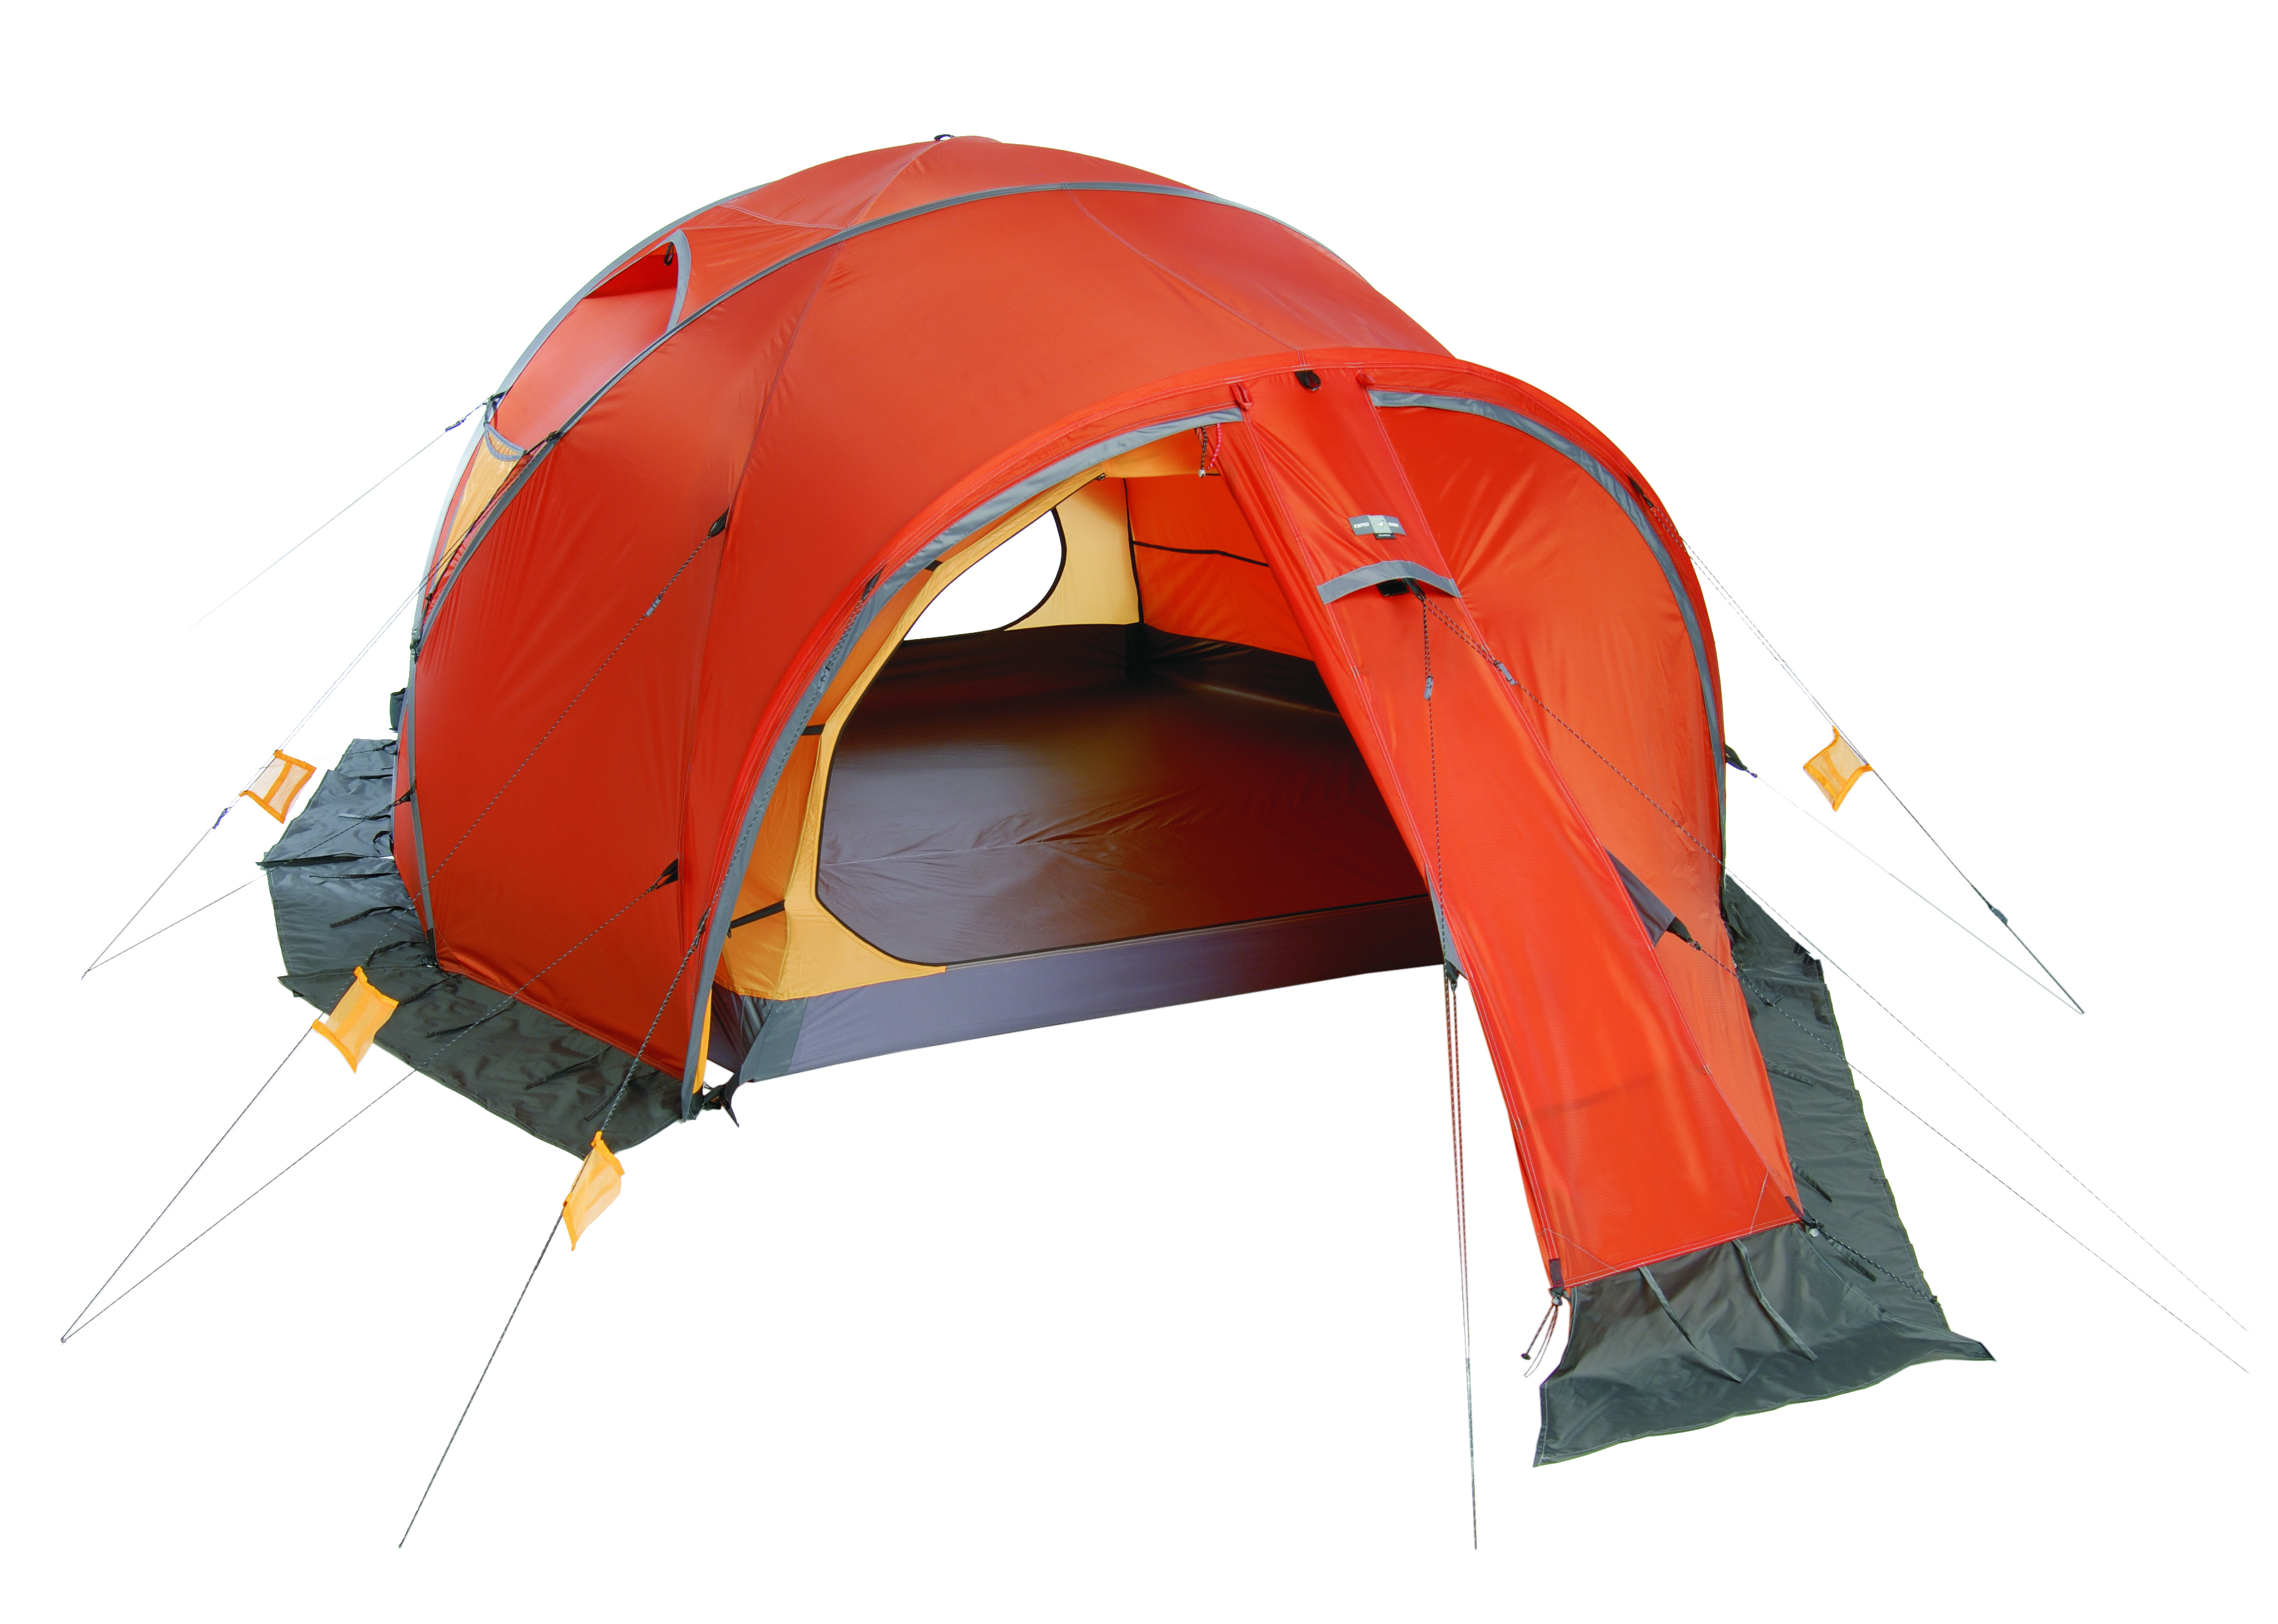 Exped Pegasus Tent - 4 Person 3 Season | 36% Off 4.8 Star Rating w/ Free Su0026H  sc 1 st  Optics Planet & Exped Pegasus Tent - 4 Person 3 Season | 36% Off 4.8 Star Rating w ...